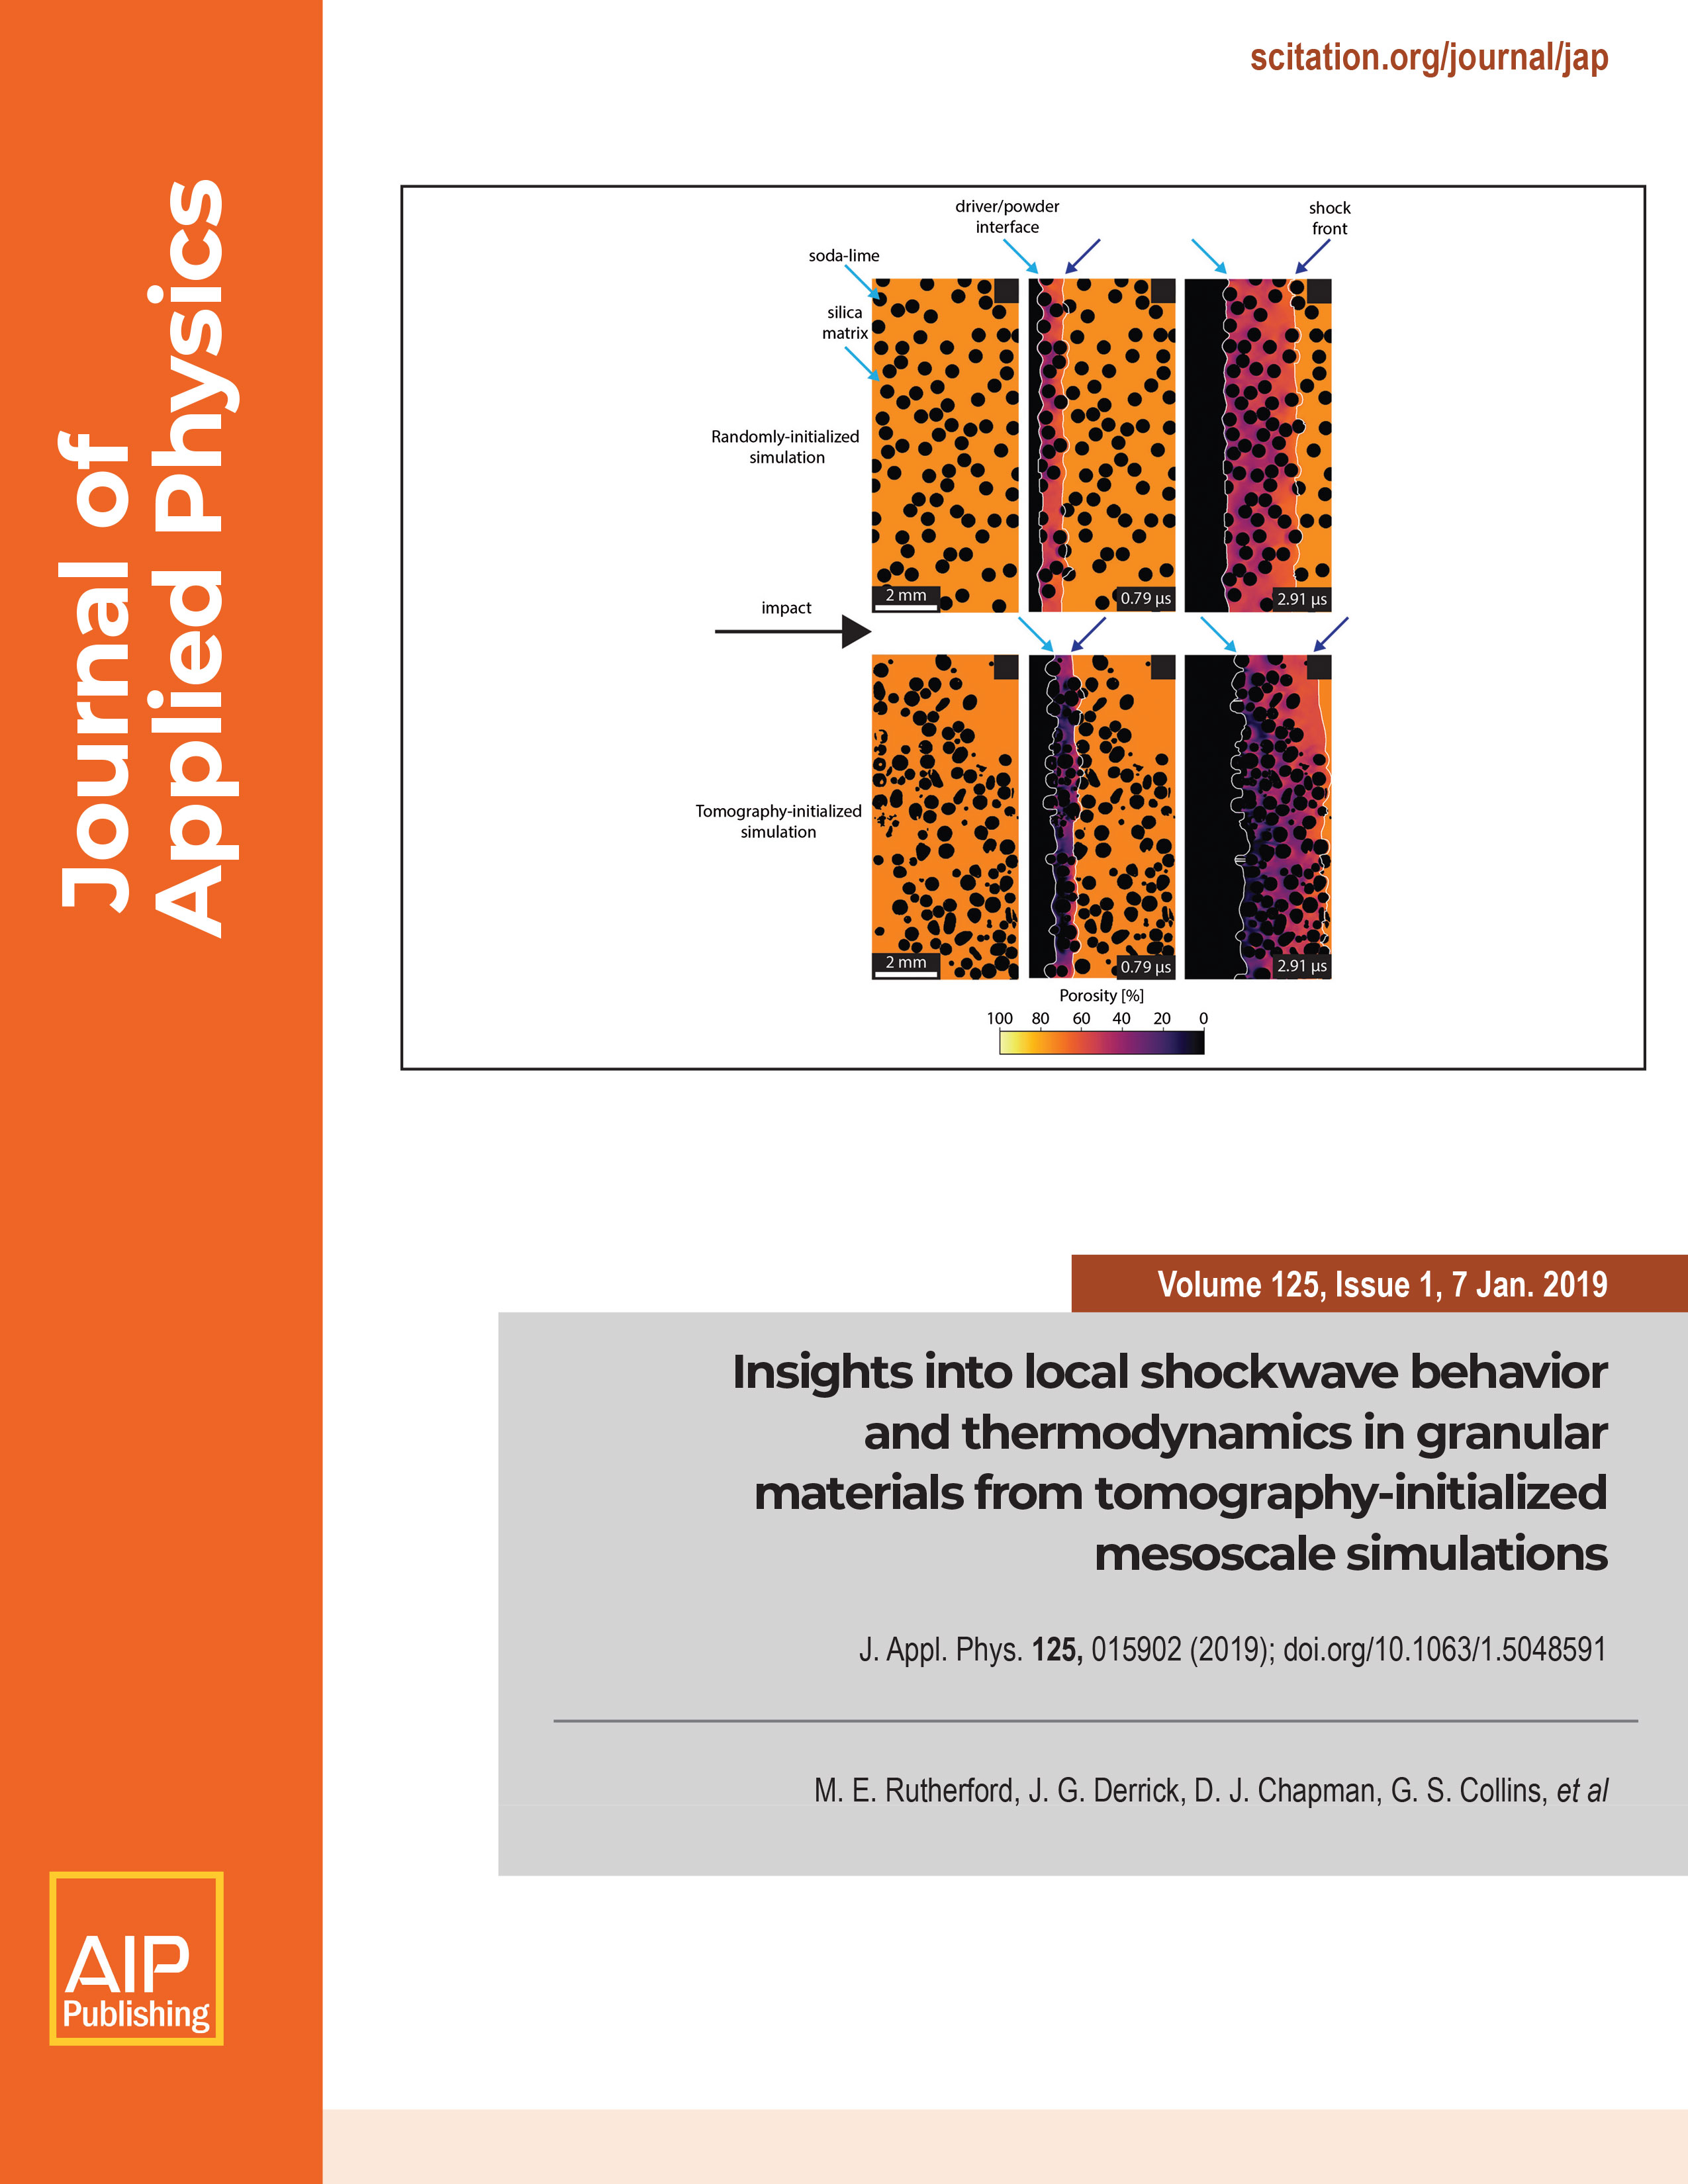 Nanoscale thermal transport: Journal of Applied Physics: Vol 93, No 2